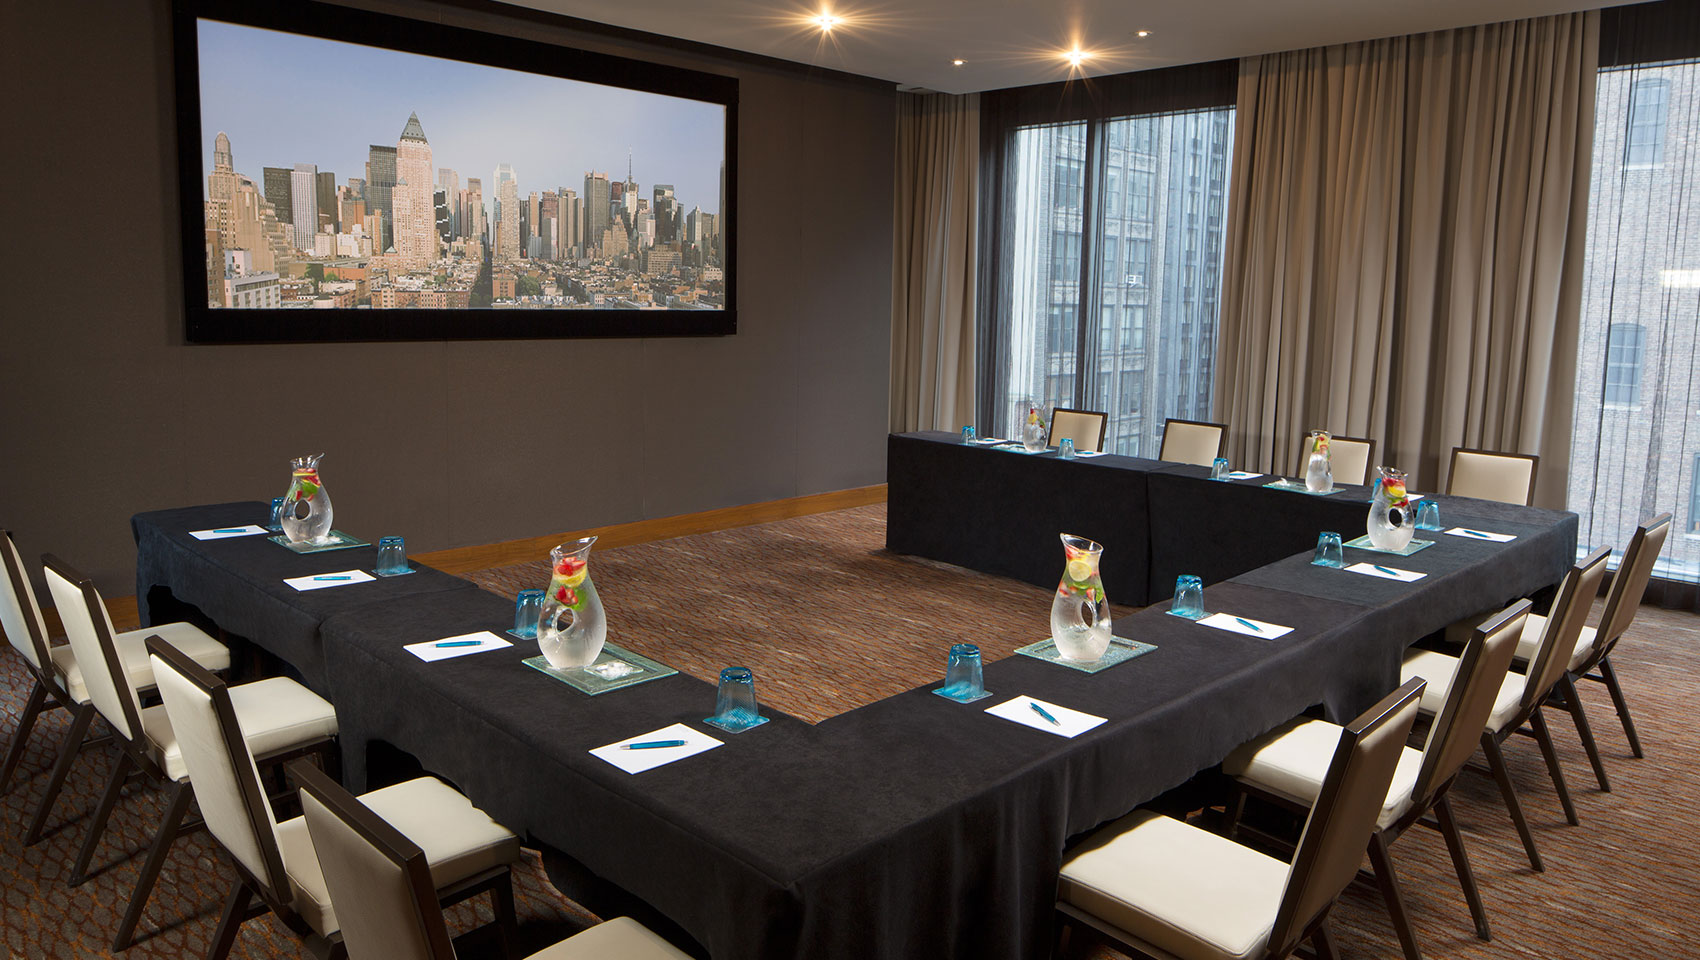 Screening room meeting with u-shape table set up facing towards large presenter screen